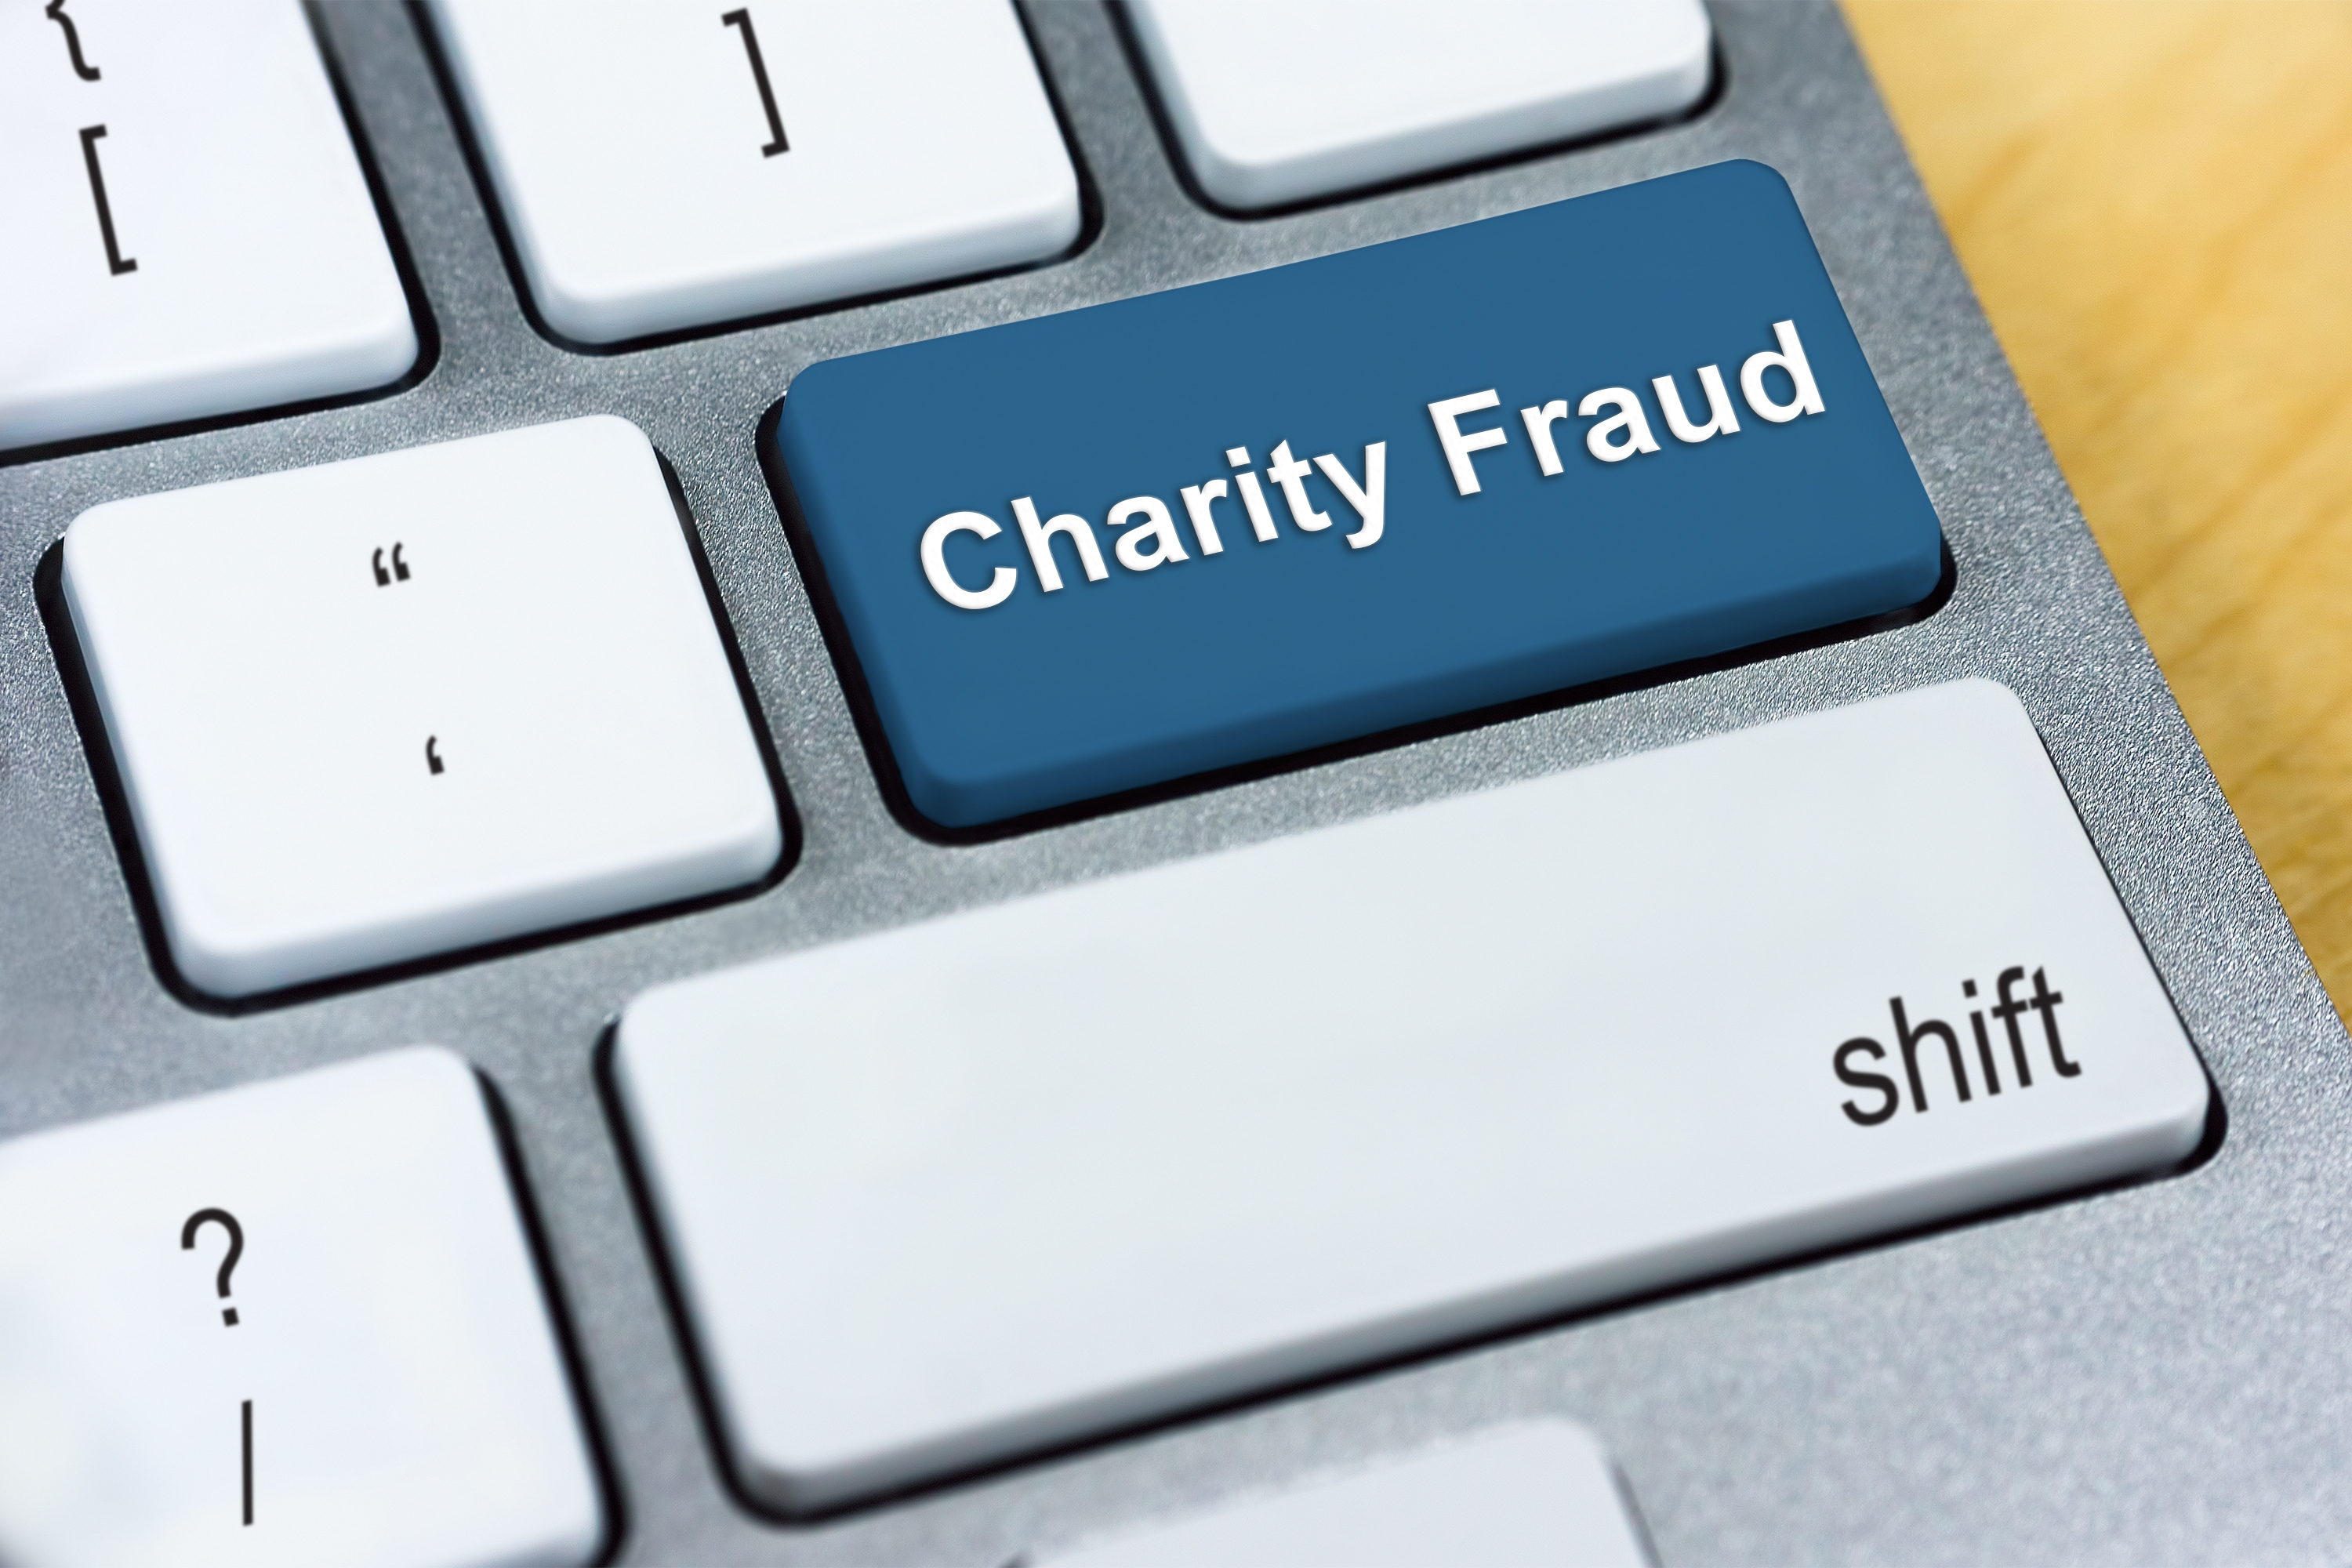 Avoiding Charity Scams: Questions to Ask & Ways to Give Header Image